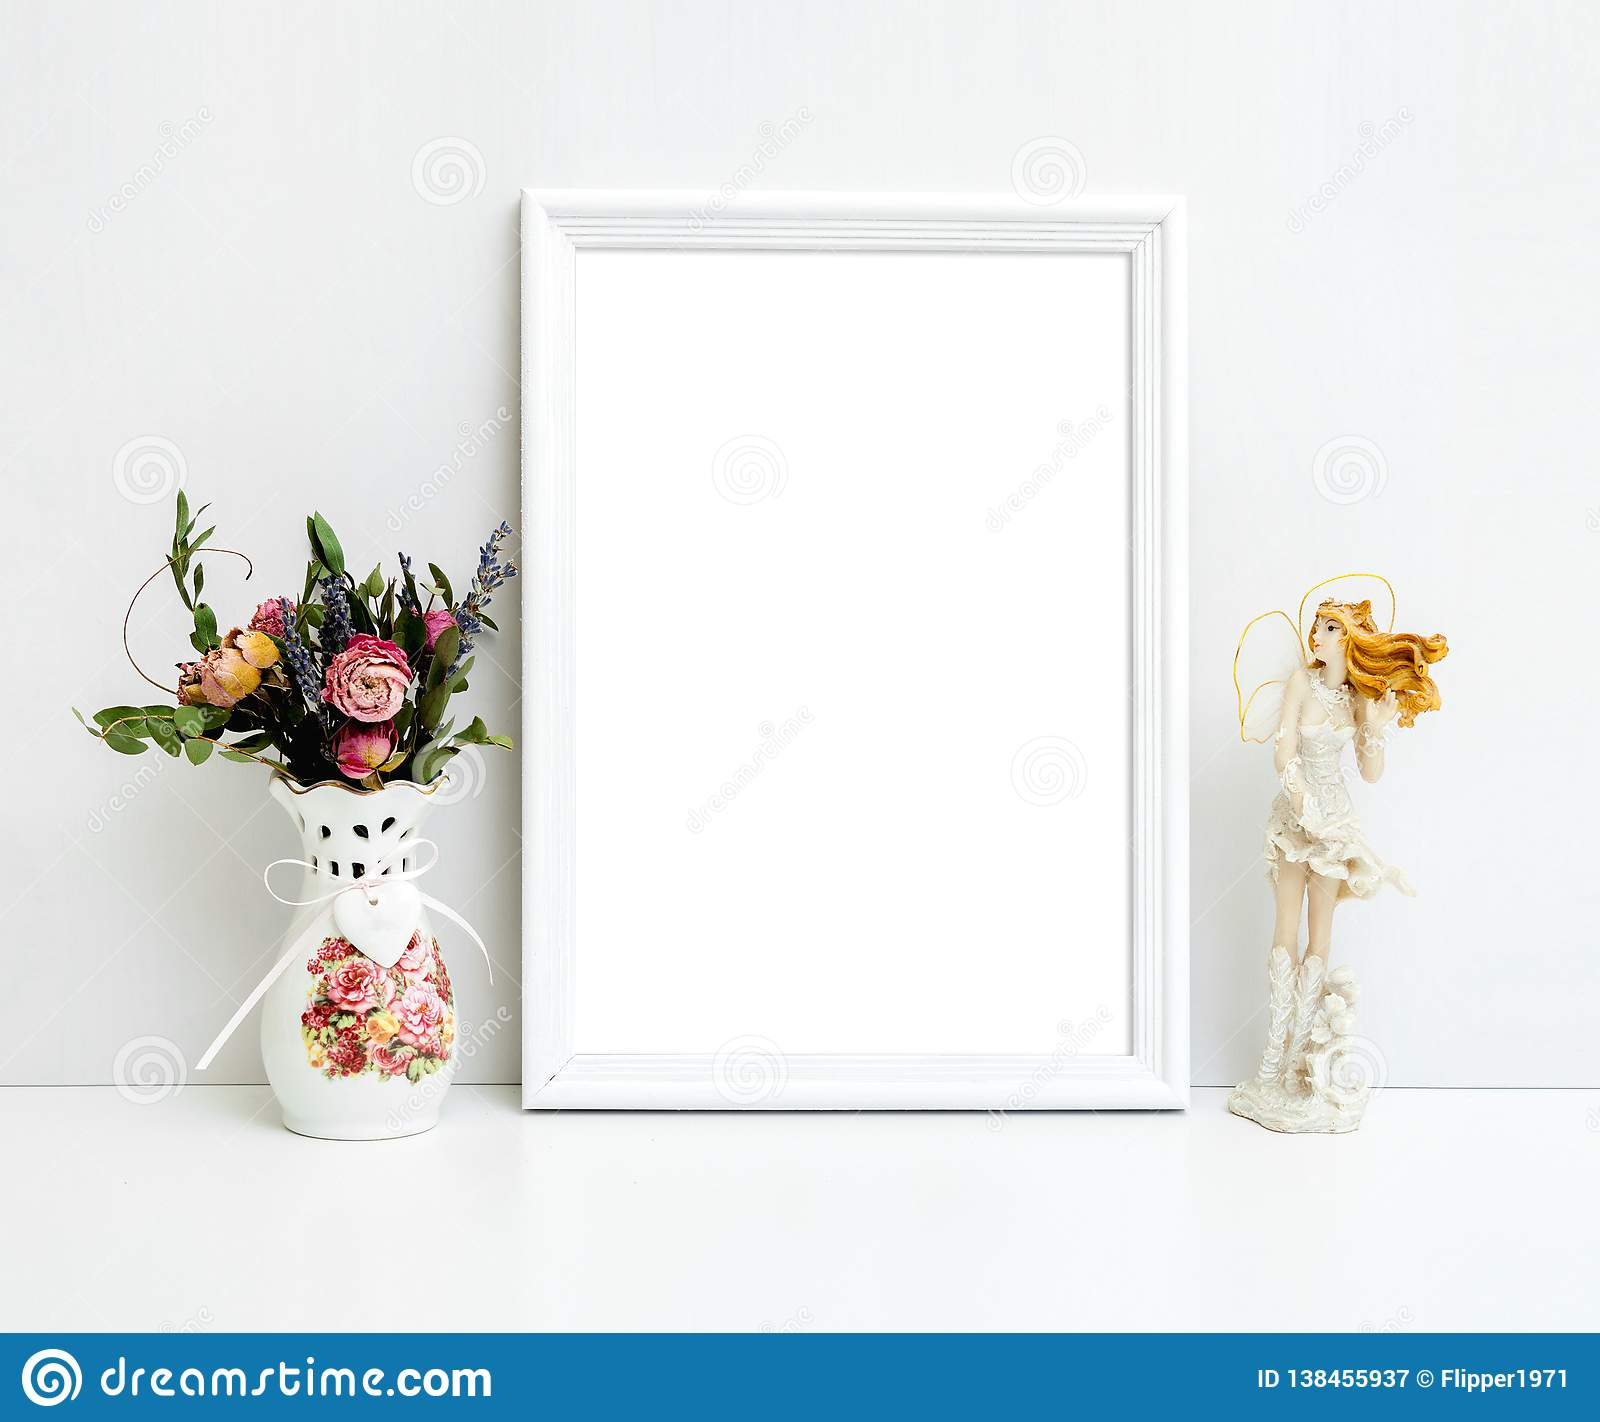 A2 White Frame A4 A3 A2 White Frame Mockup Stock Image Image Of Template Frame